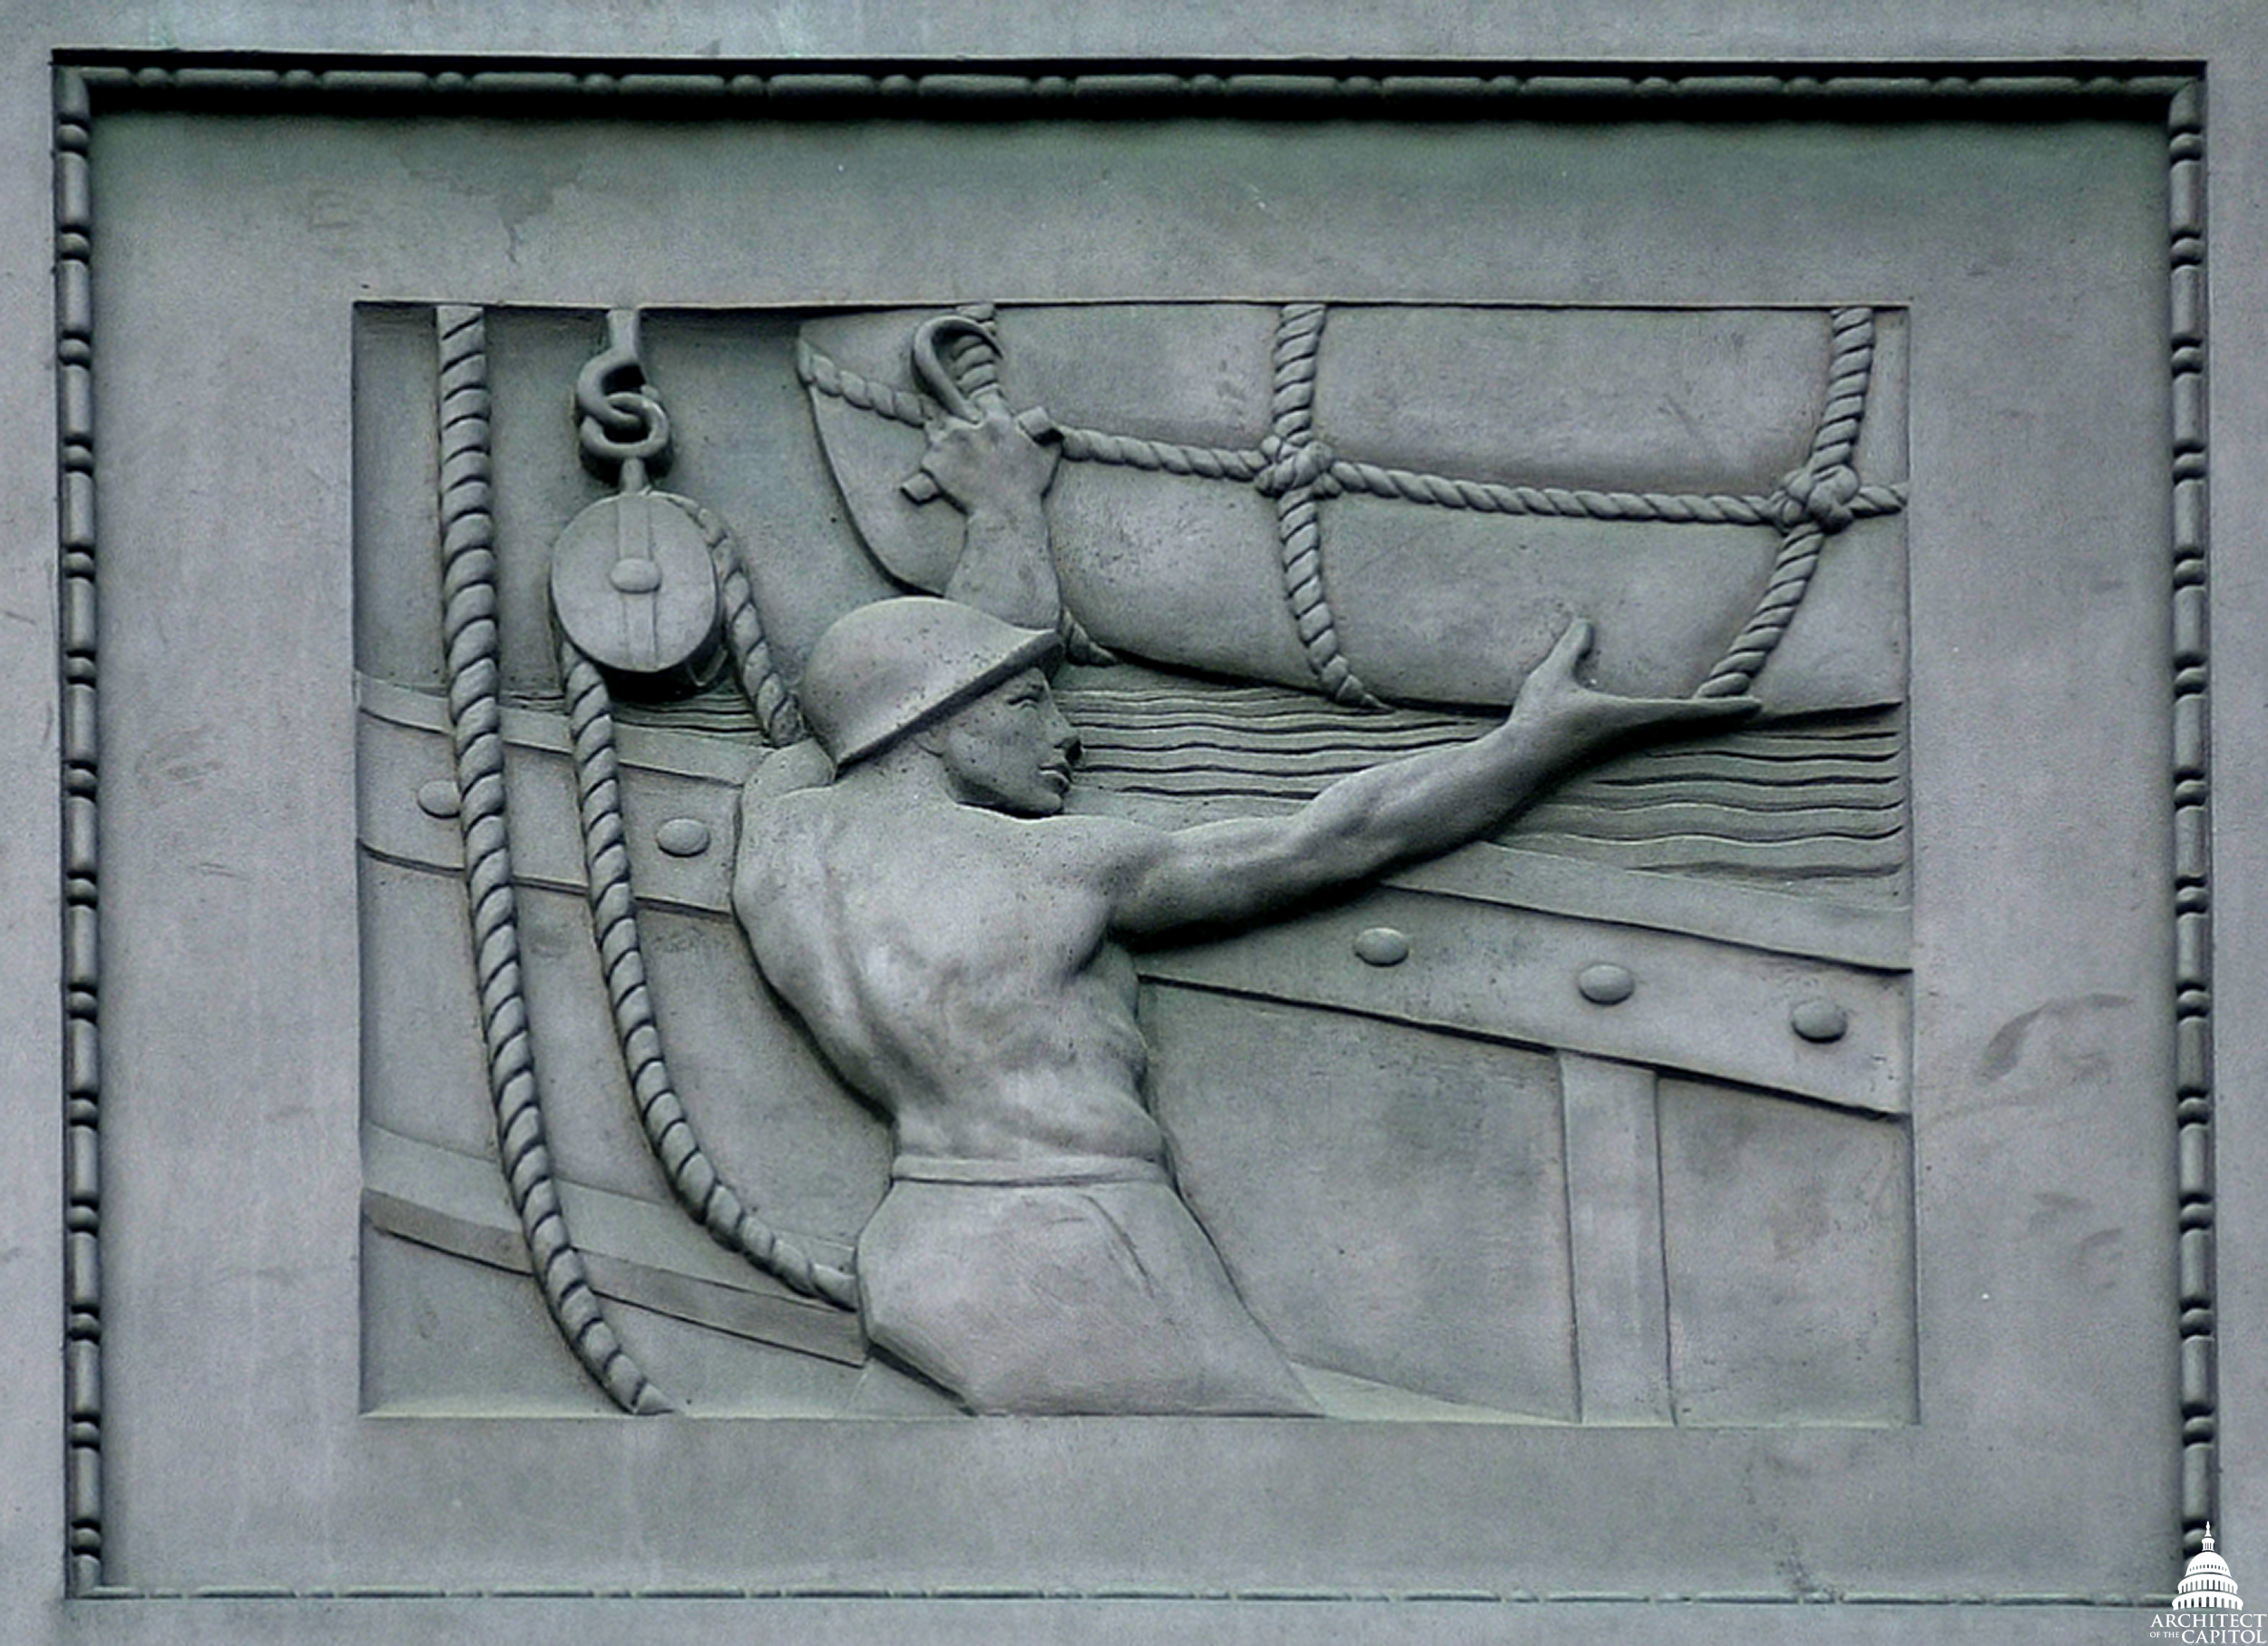 A sailor maneuvers cargo in a panel on exterior of the Dirksen Senate Office Building.